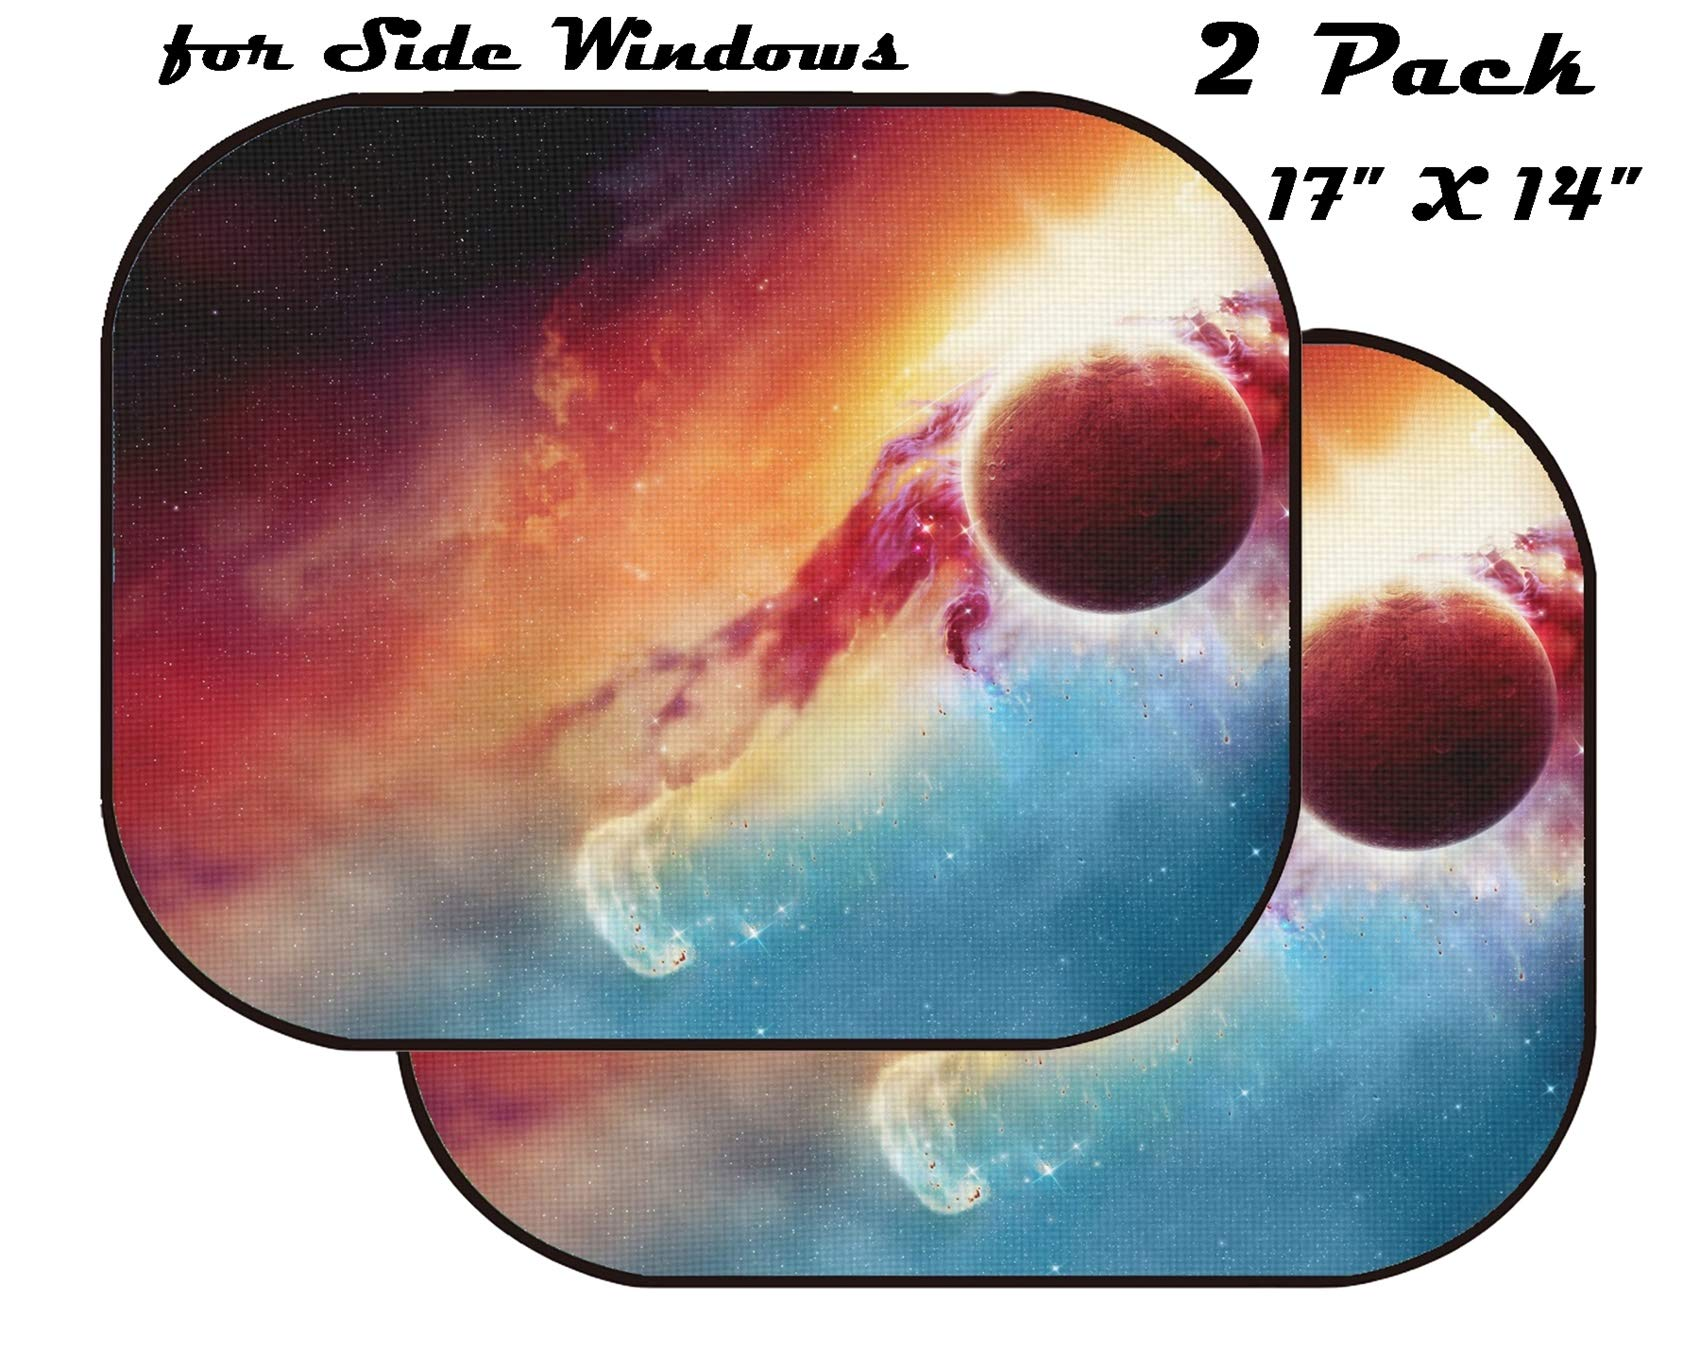 MSD Car Sun Shade for Side Window - UV Protector for Baby and Pet - Block Sunlight - Image of Background Star Space Galaxy Astronomy Cosmos Universe Abstract Planet Light Nebula Fantasy Science Sun